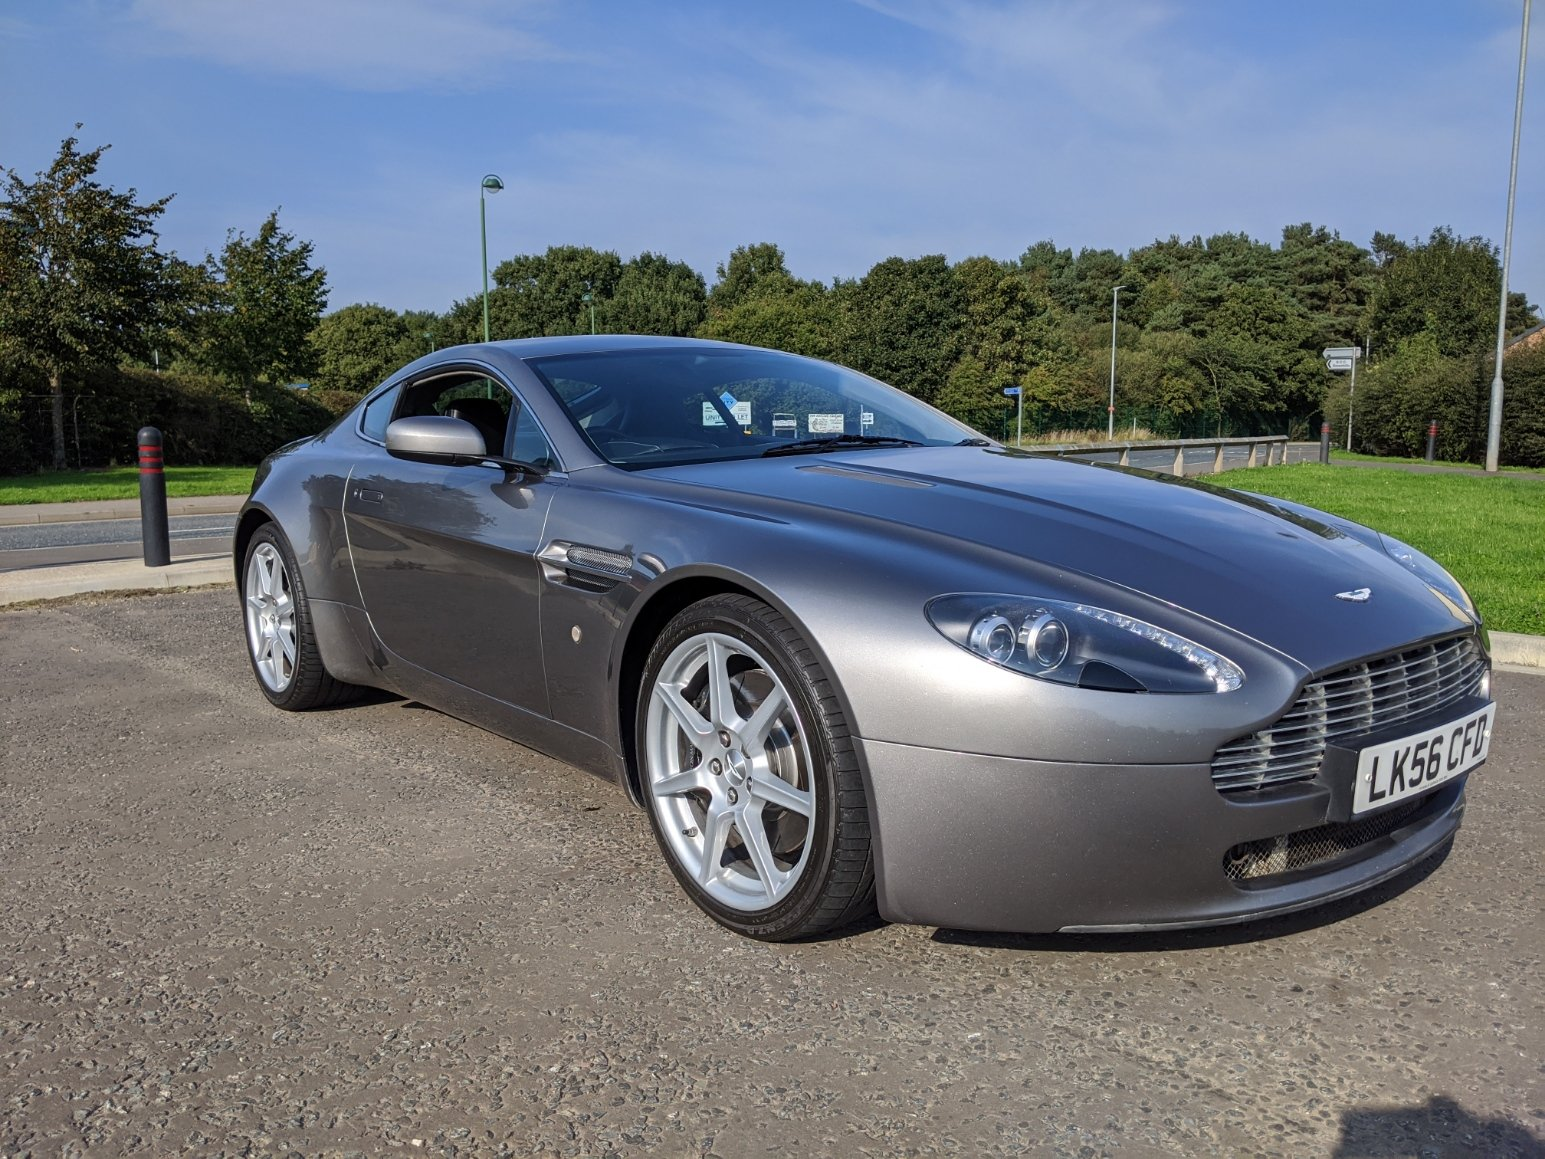 2006 Aston Martin Vantage V8 - Full AM Service History For Sale (picture 1 of 6)